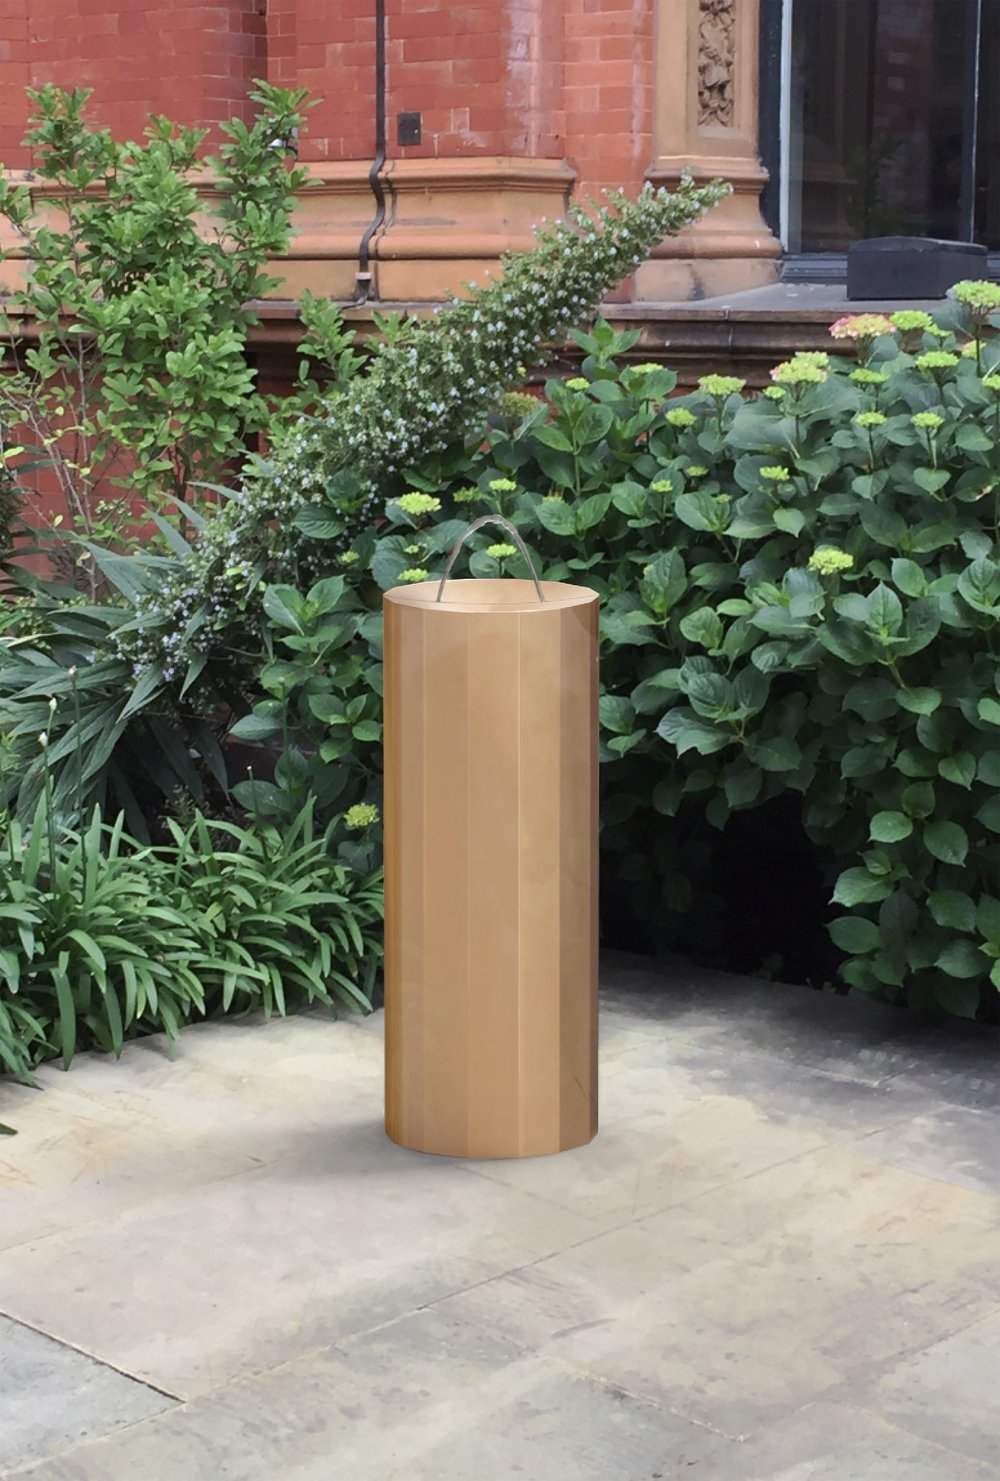 The Fleet drinking fountain designed by Michael Anastassiades at the V&A Museum.